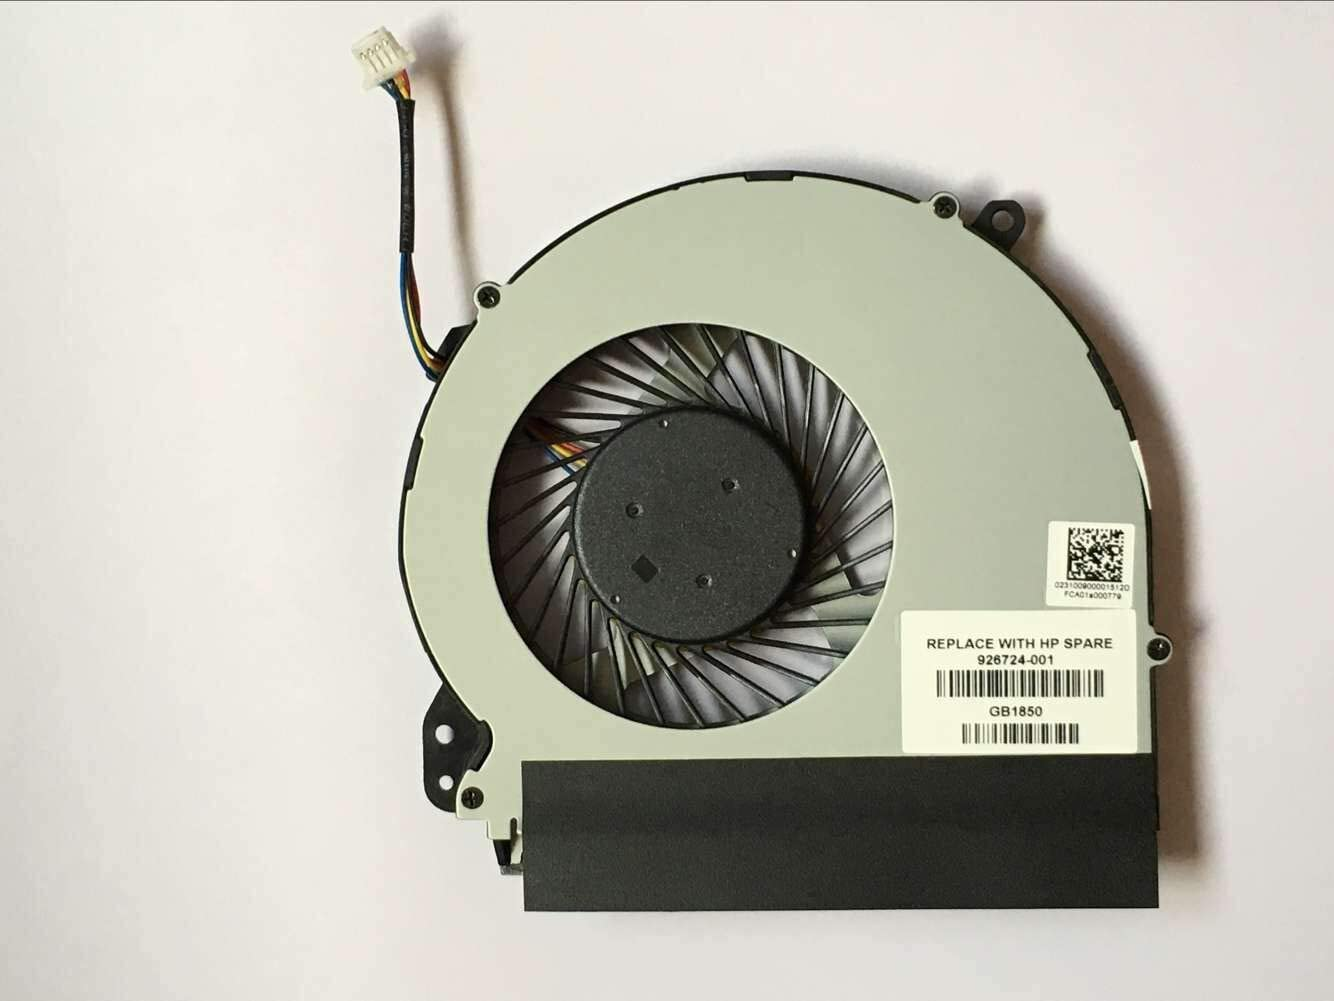 Z-one Fan Replacement for HP Notebook 17-X 17-X000 17-Y 17-AK 17-AK000 17-BS 17-BS100 17-BS000 Series CPU Cooling Fan 926724-001 856681-001,856682-001 4-Wire